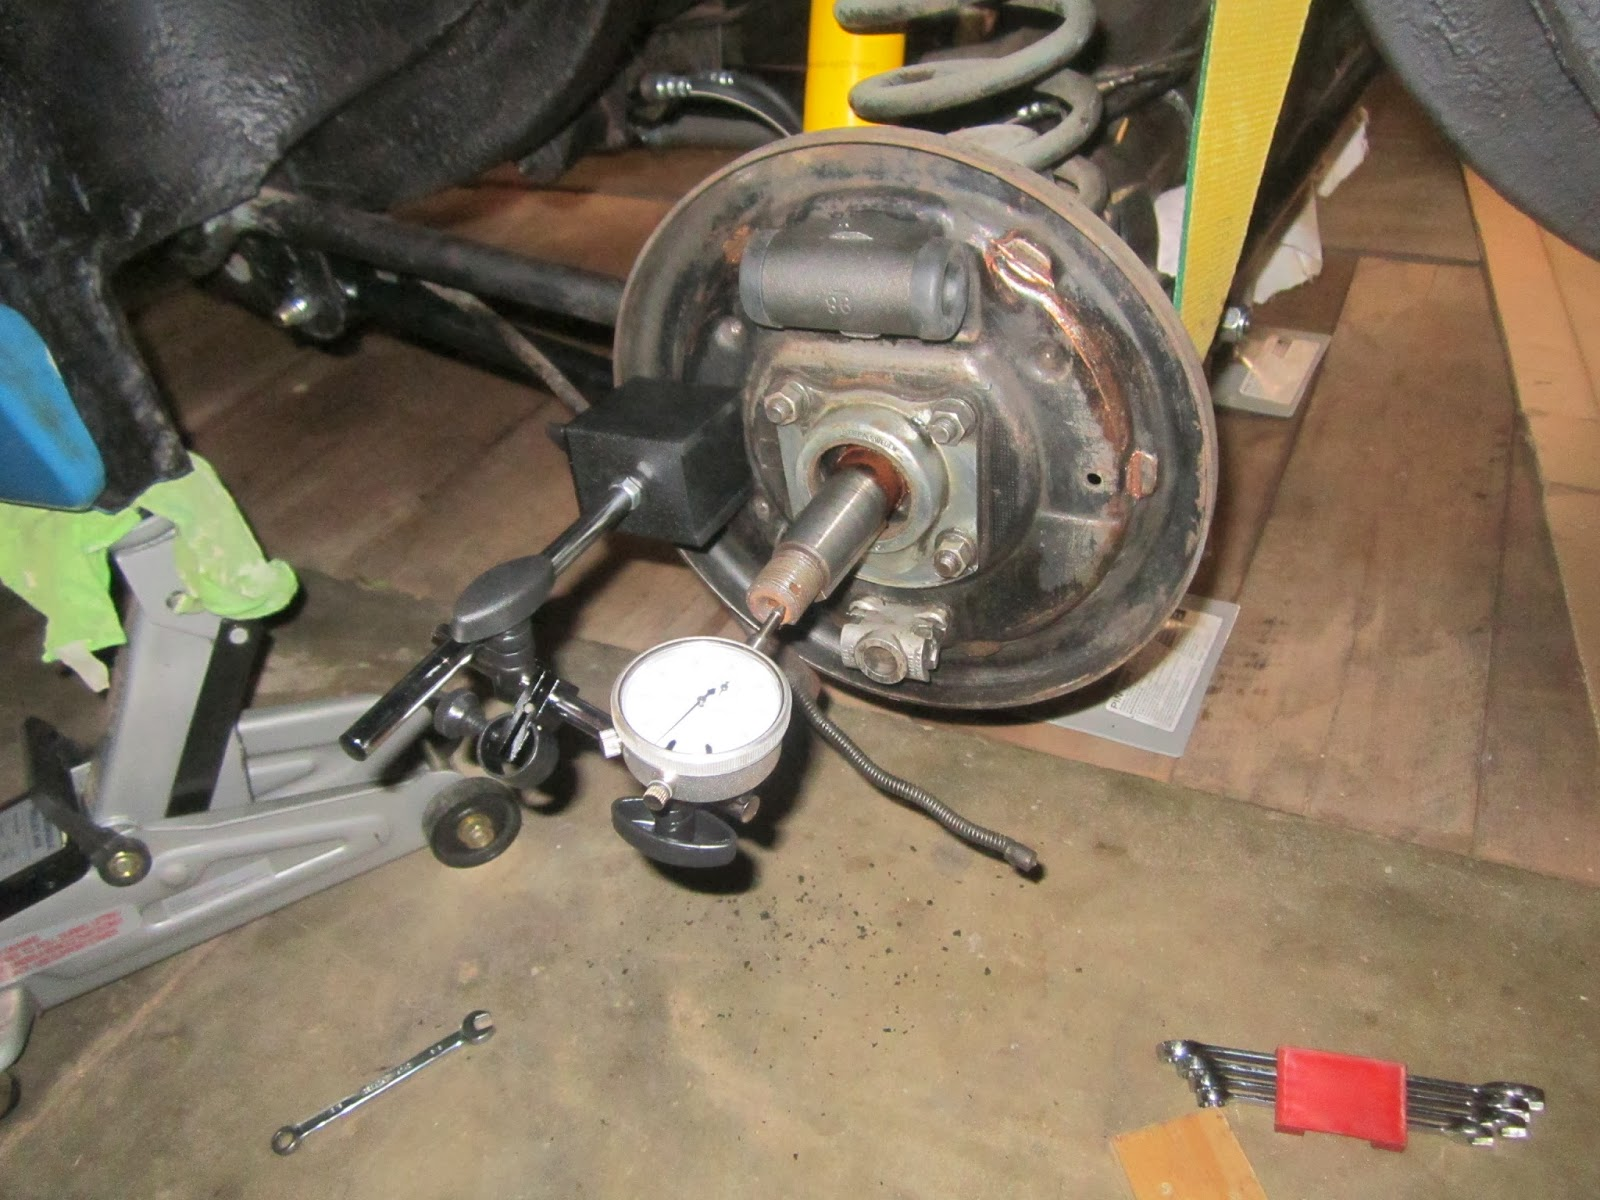 Measuring the Spicer rear axle play with a dial indicator Volvo Amazon